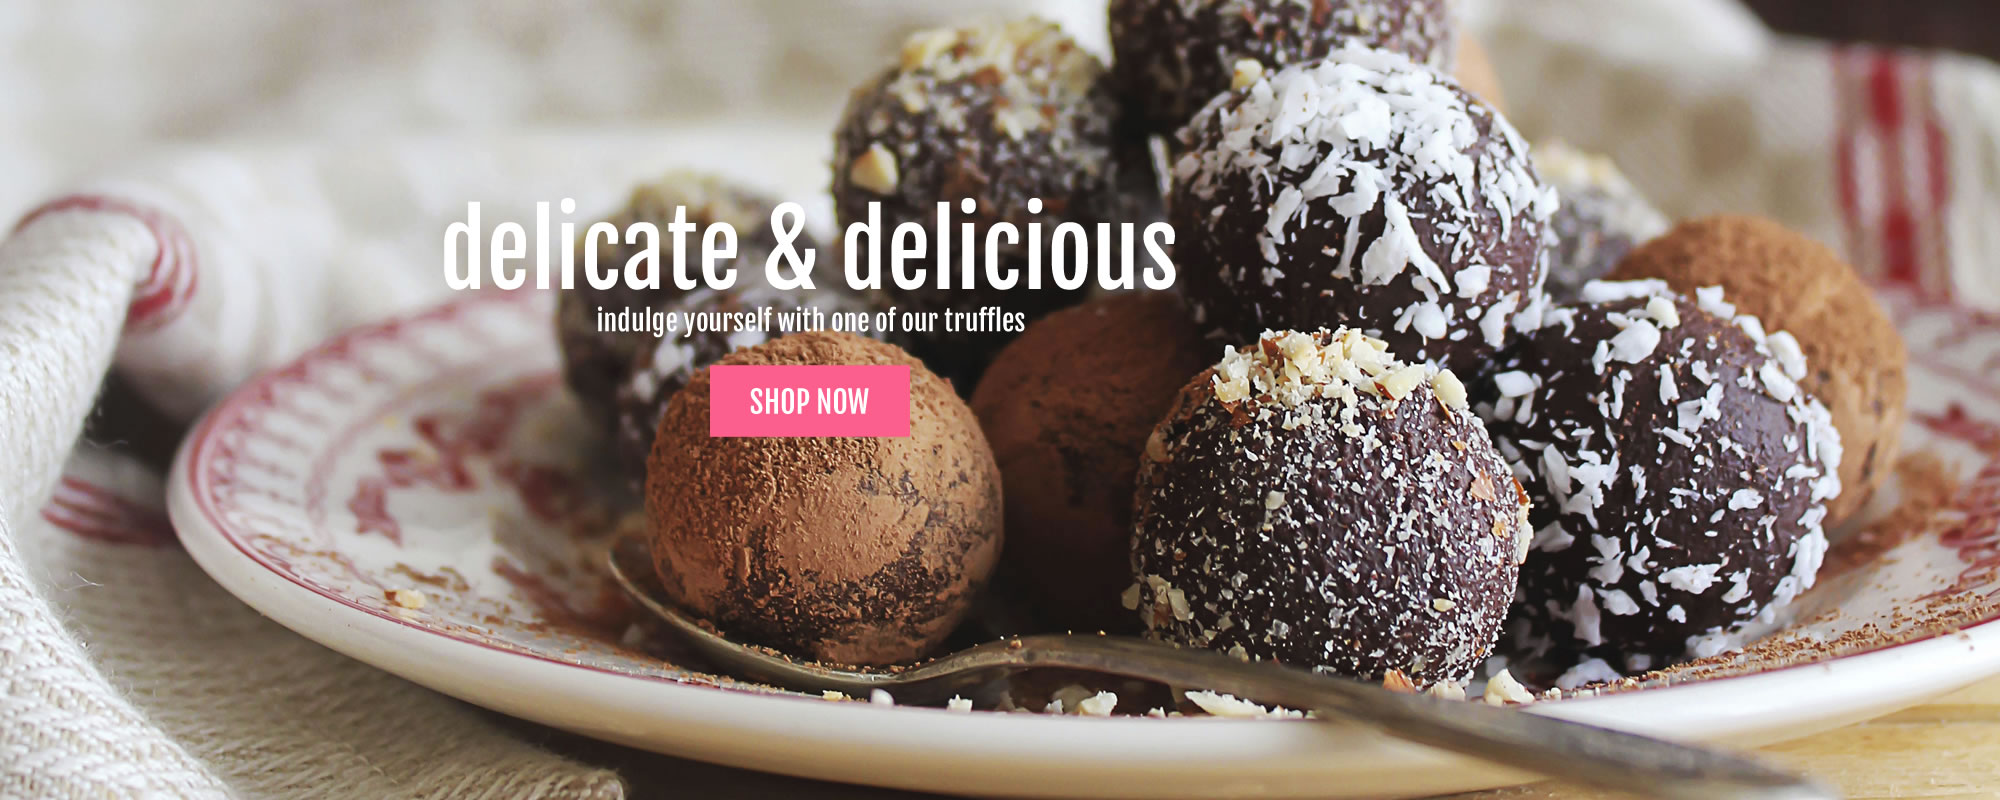 Bedford Candies - Shop Now